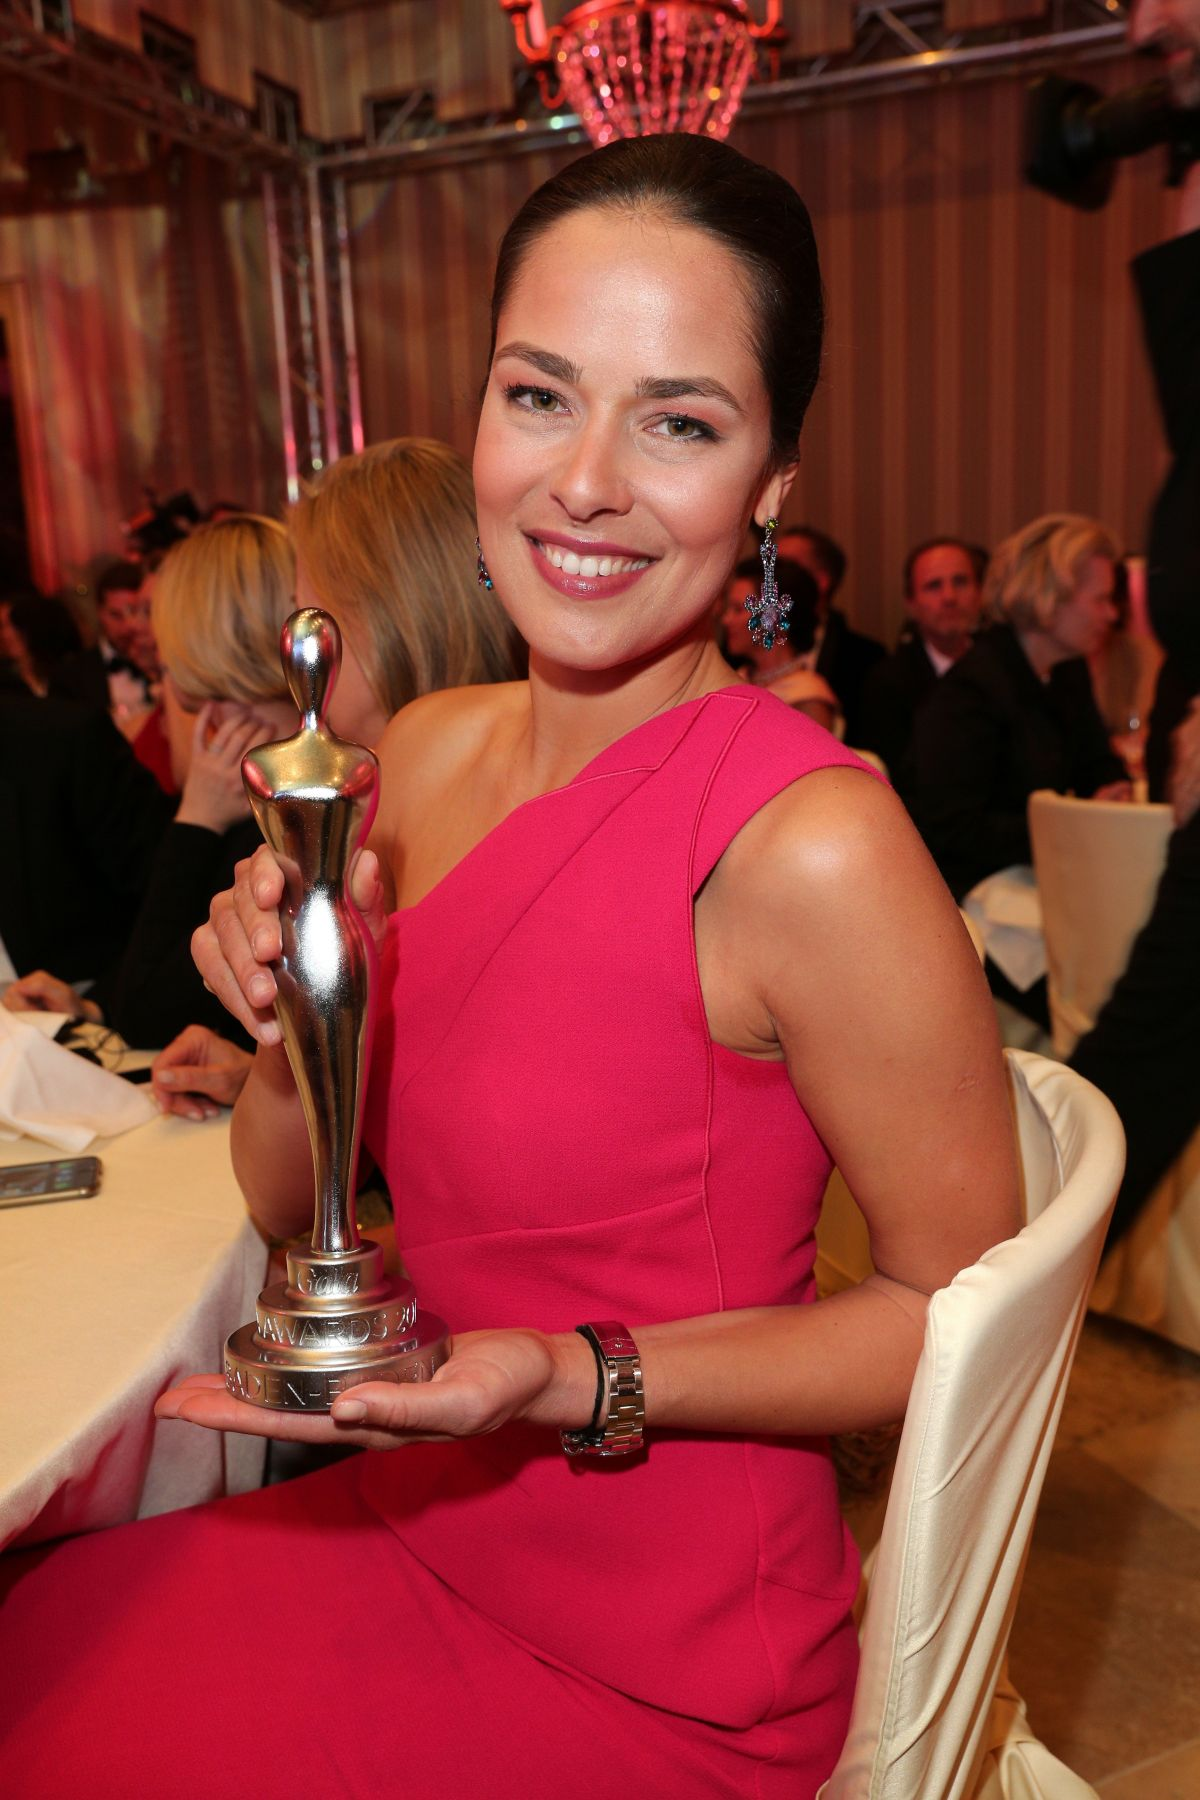 ANA IVANOVIC at Gala SPa Awards Brenners Parkhotel Spa in ...